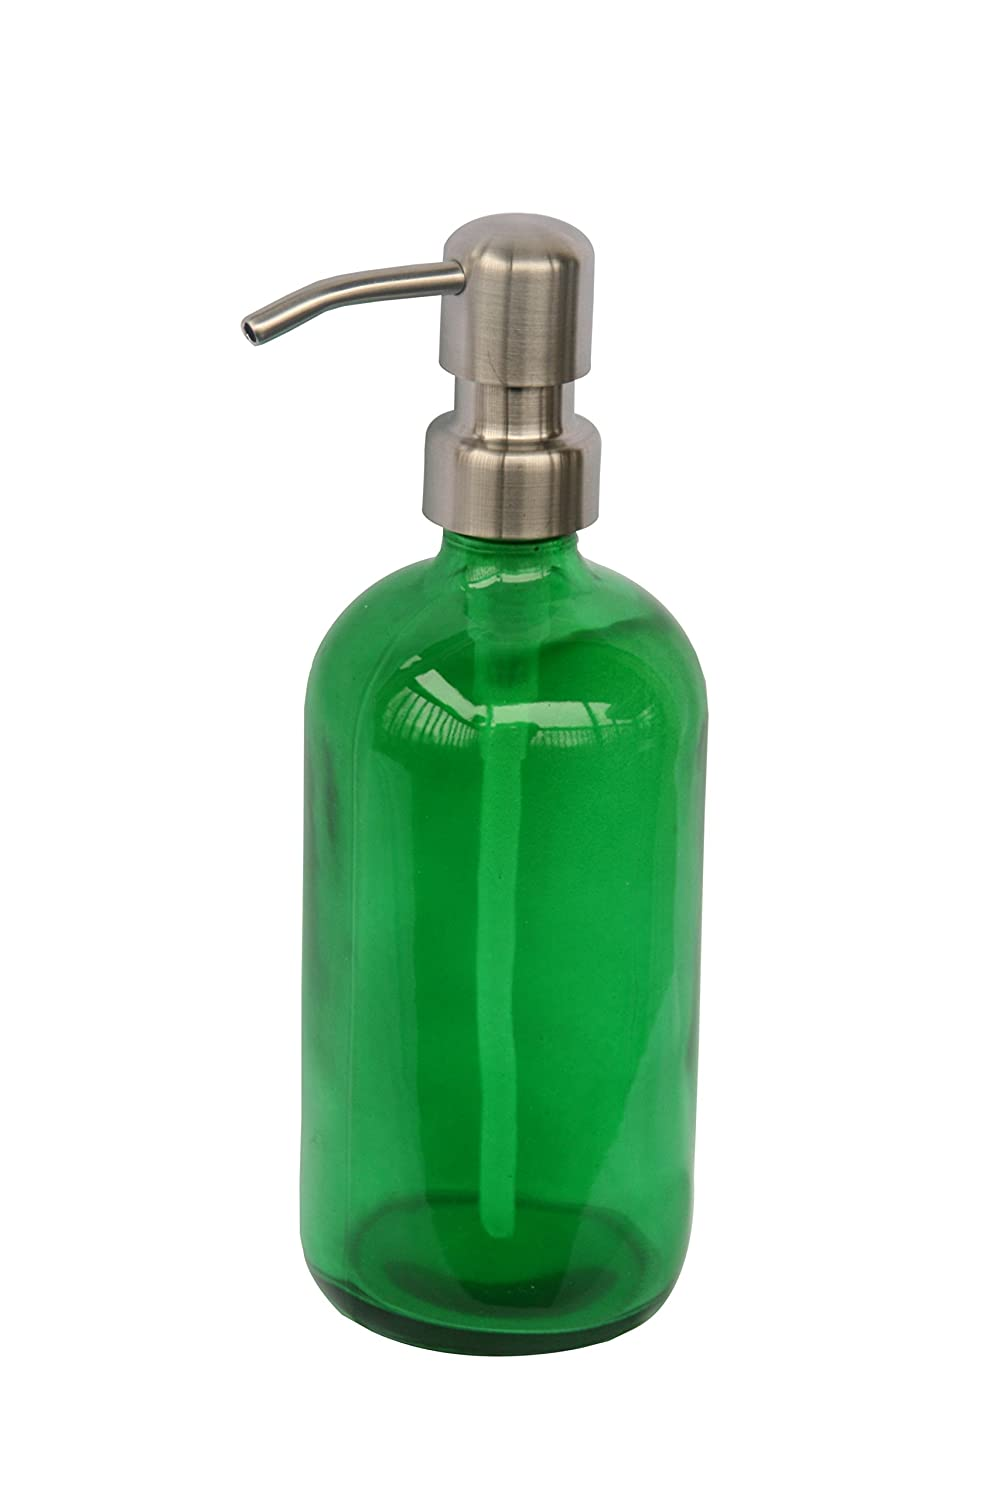 Industrial Rewind Green Glass Soap Dispenser with Stainless Metal Pump - Green 16oz Glass Bottle Lotion Bottle GSt16